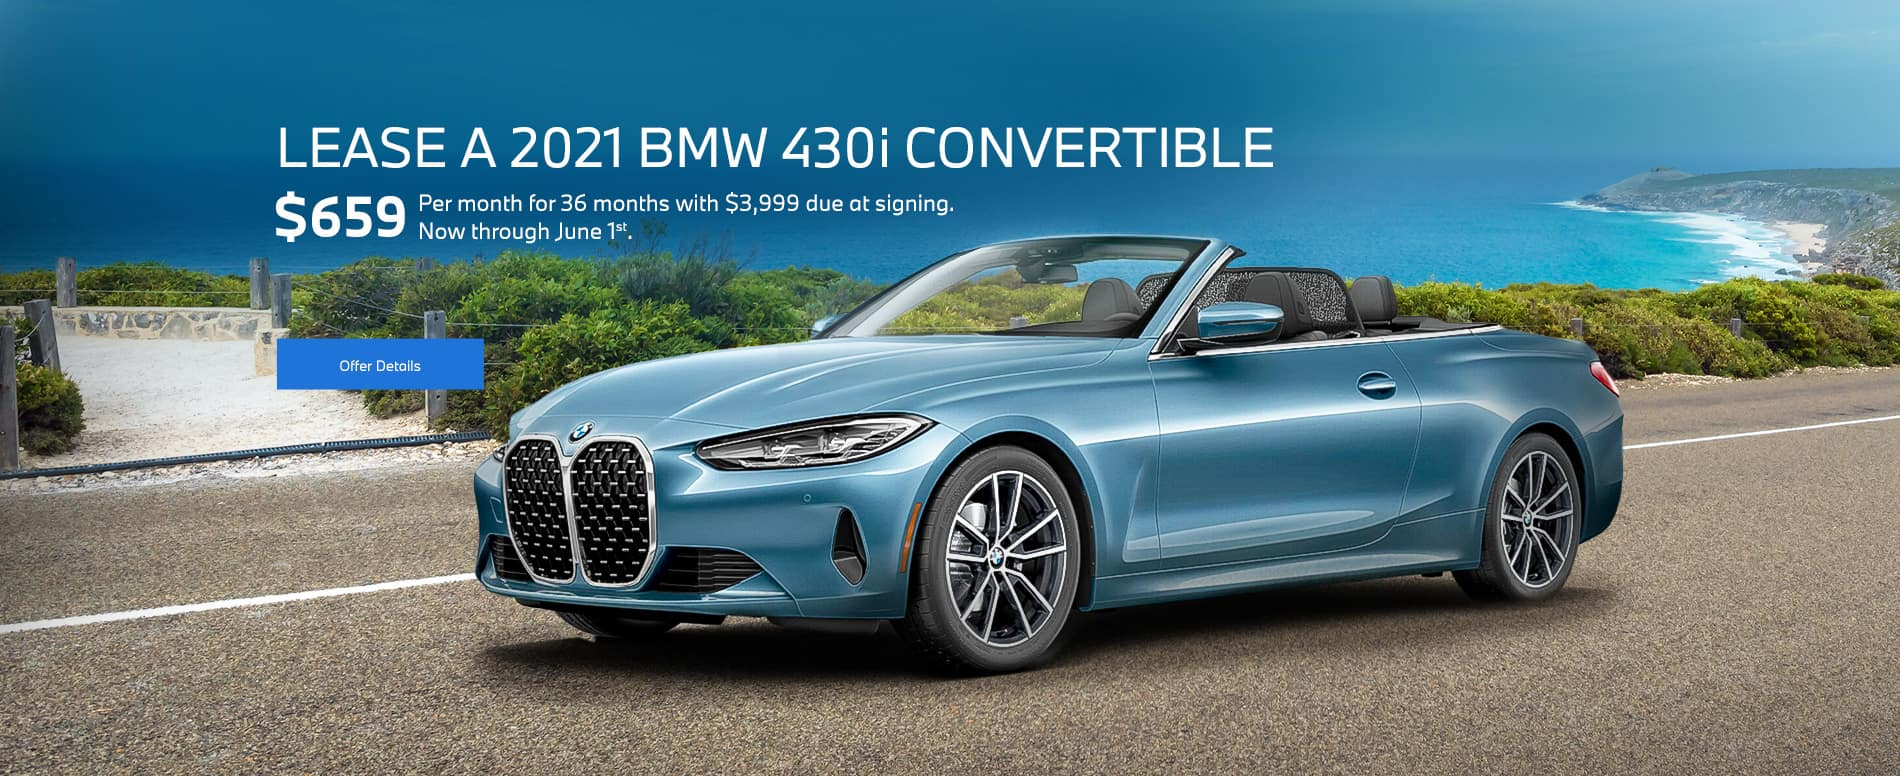 A blue new 2021 BMW 430i leasing for $659 per month for 36 months with $3,999 due at signing